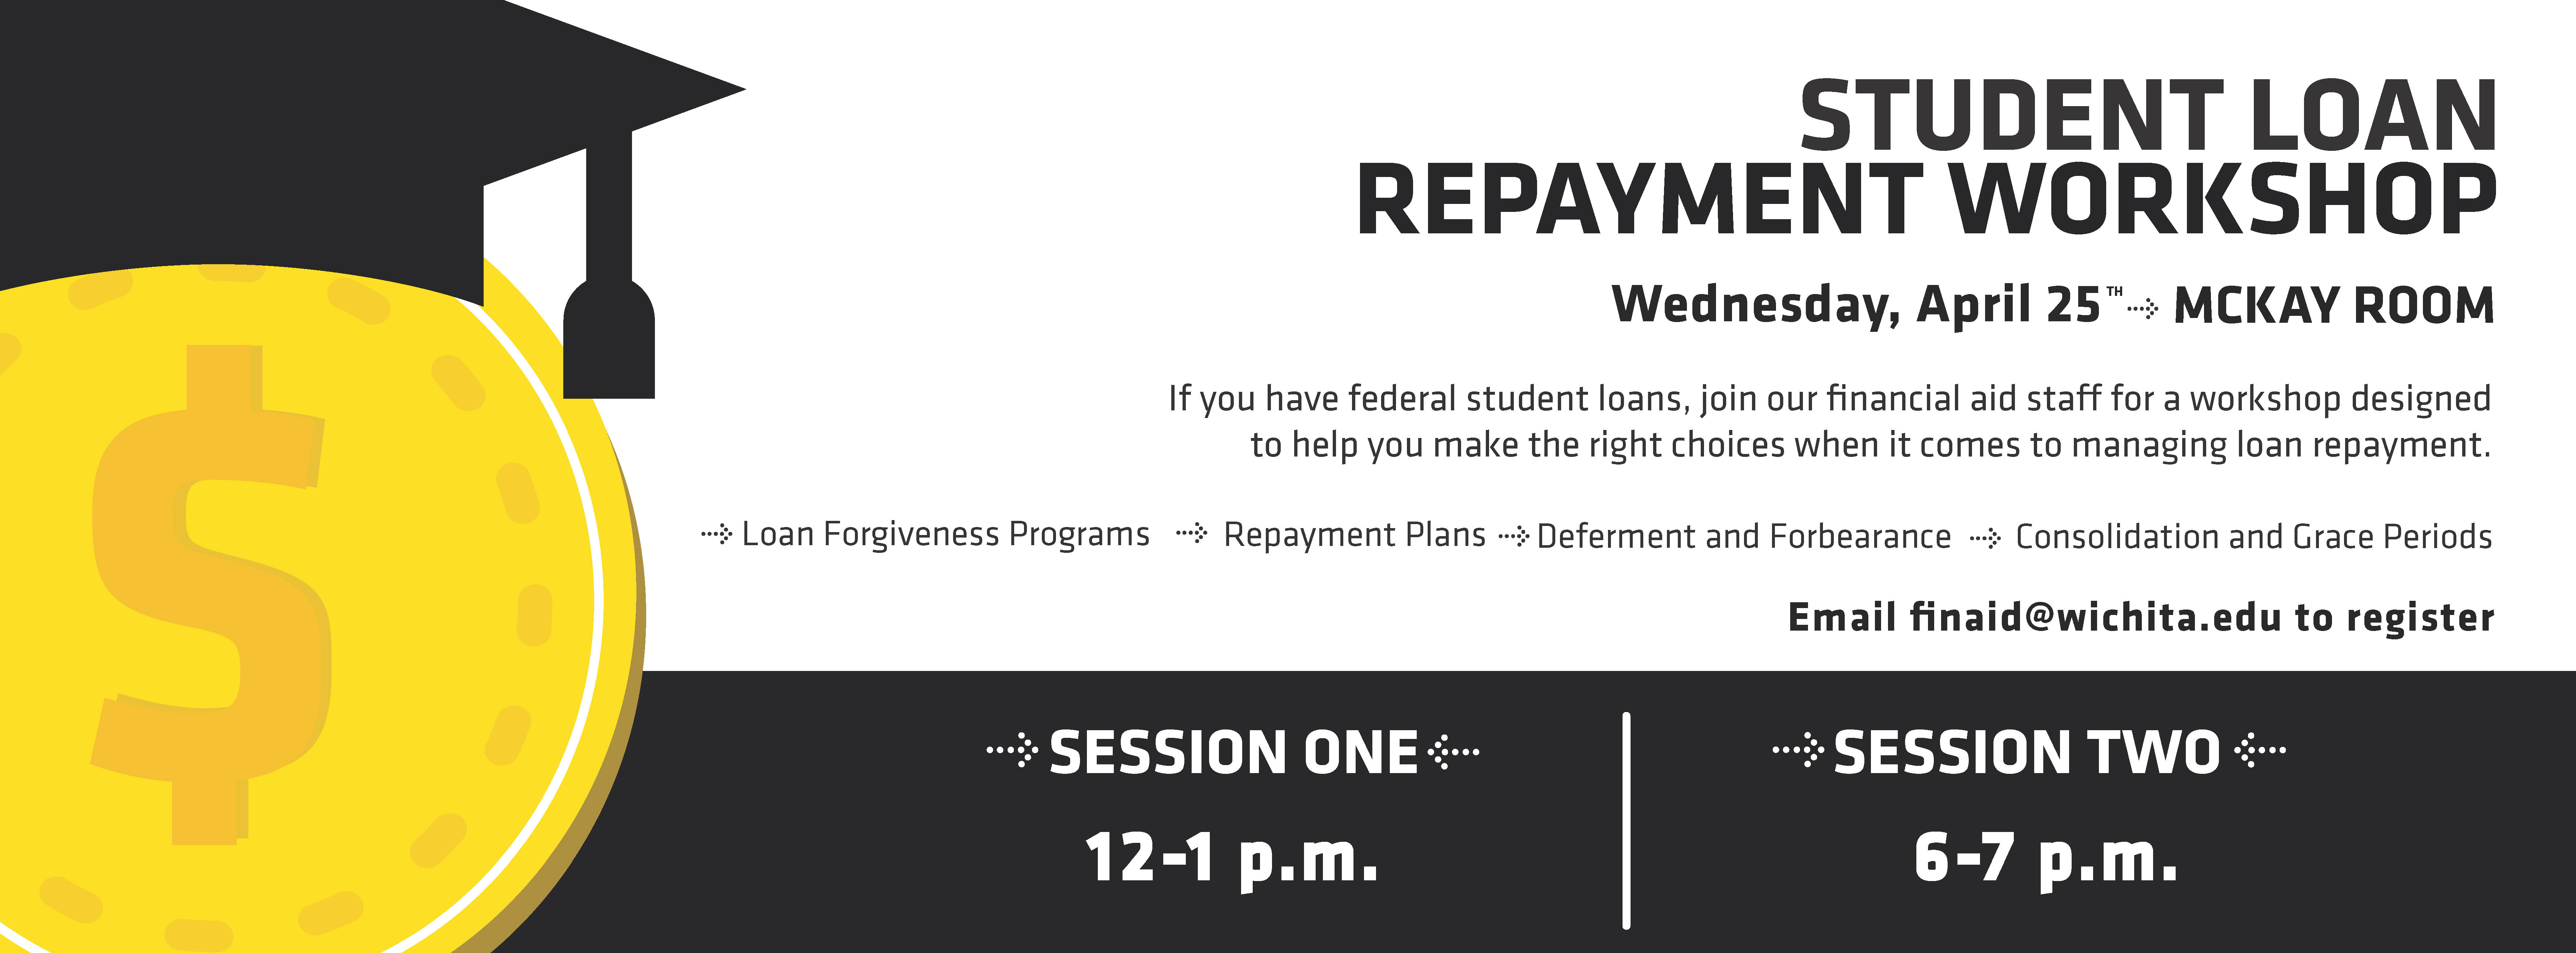 Graphic - Student Loan Repayment Workshop - April 25th - 12-1 p.m. or 6-7 p.m. in RSC Room 319 McKay